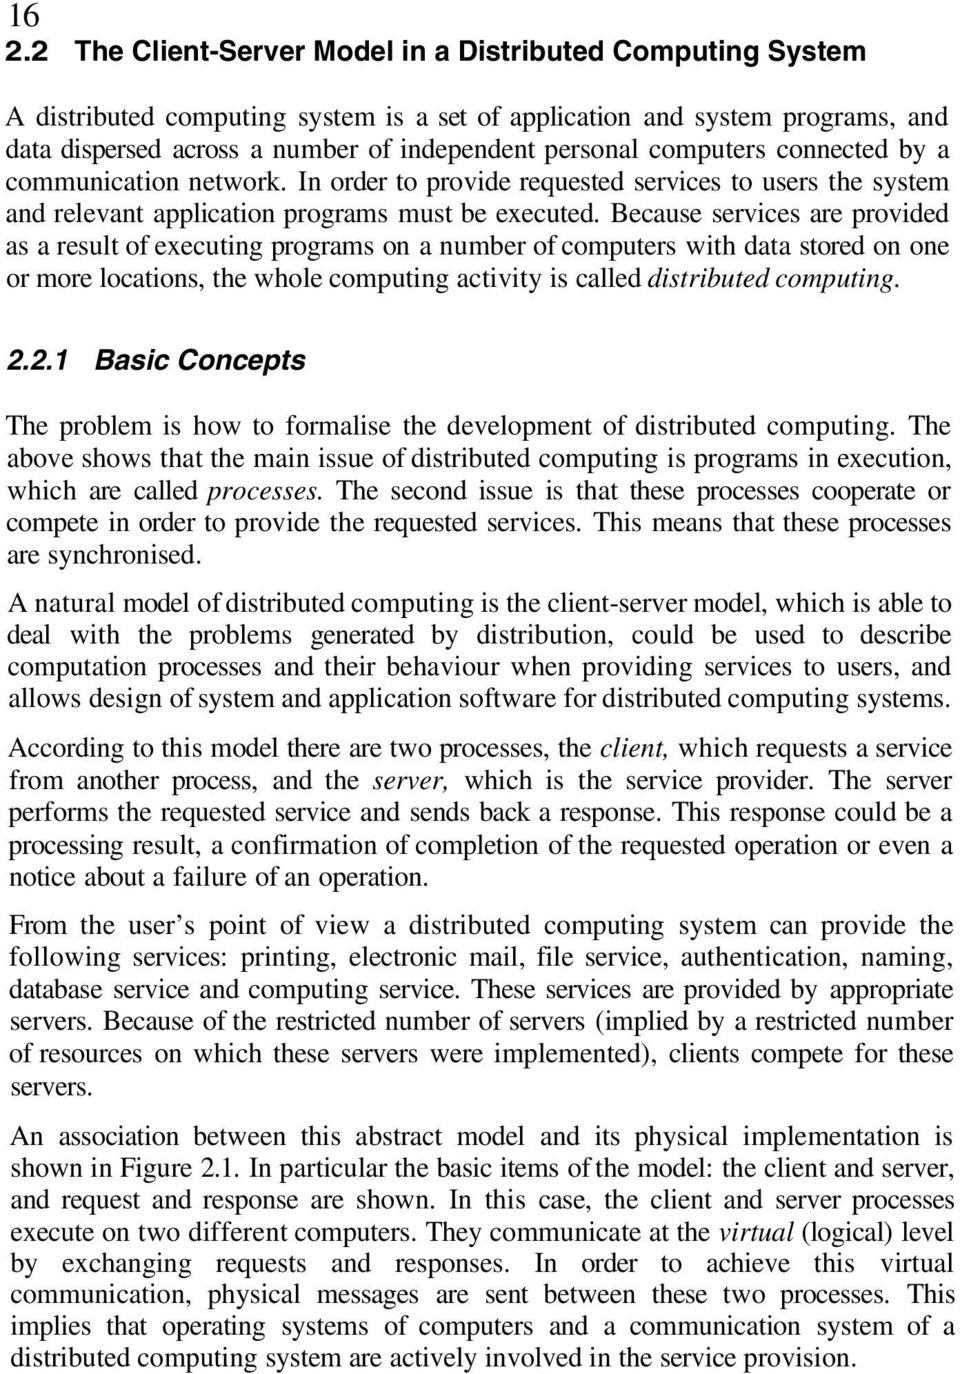 Because services are provided as a result of executing programs on a number of computers with data stored on one or more locations, the whole computing activity is called distributed computing. 2.